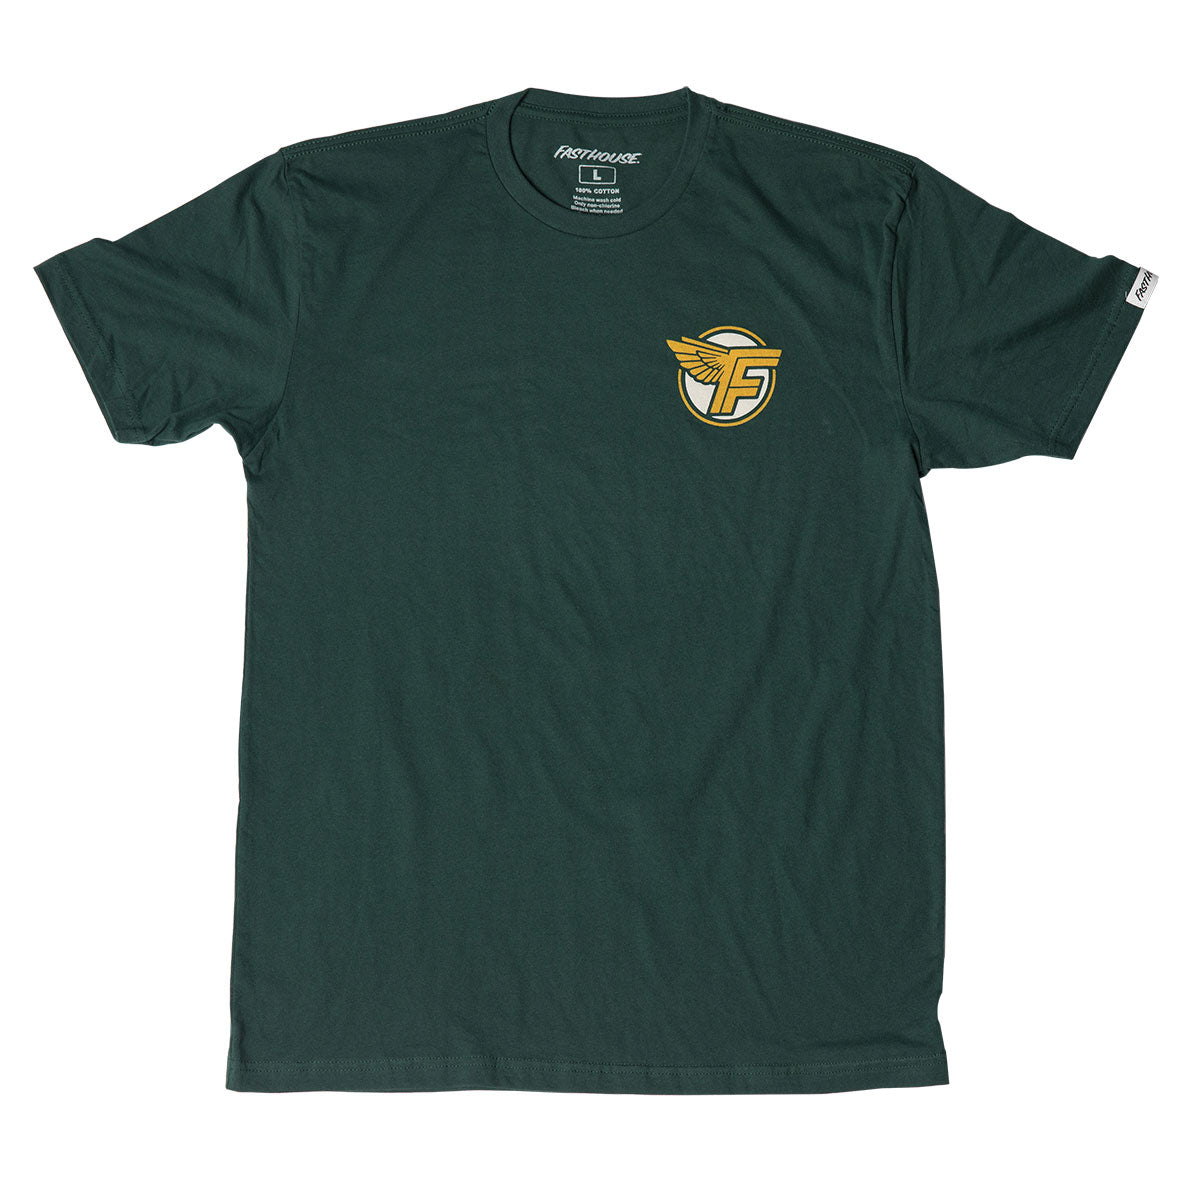 Fasthouse - Malen Tee - Forest Green